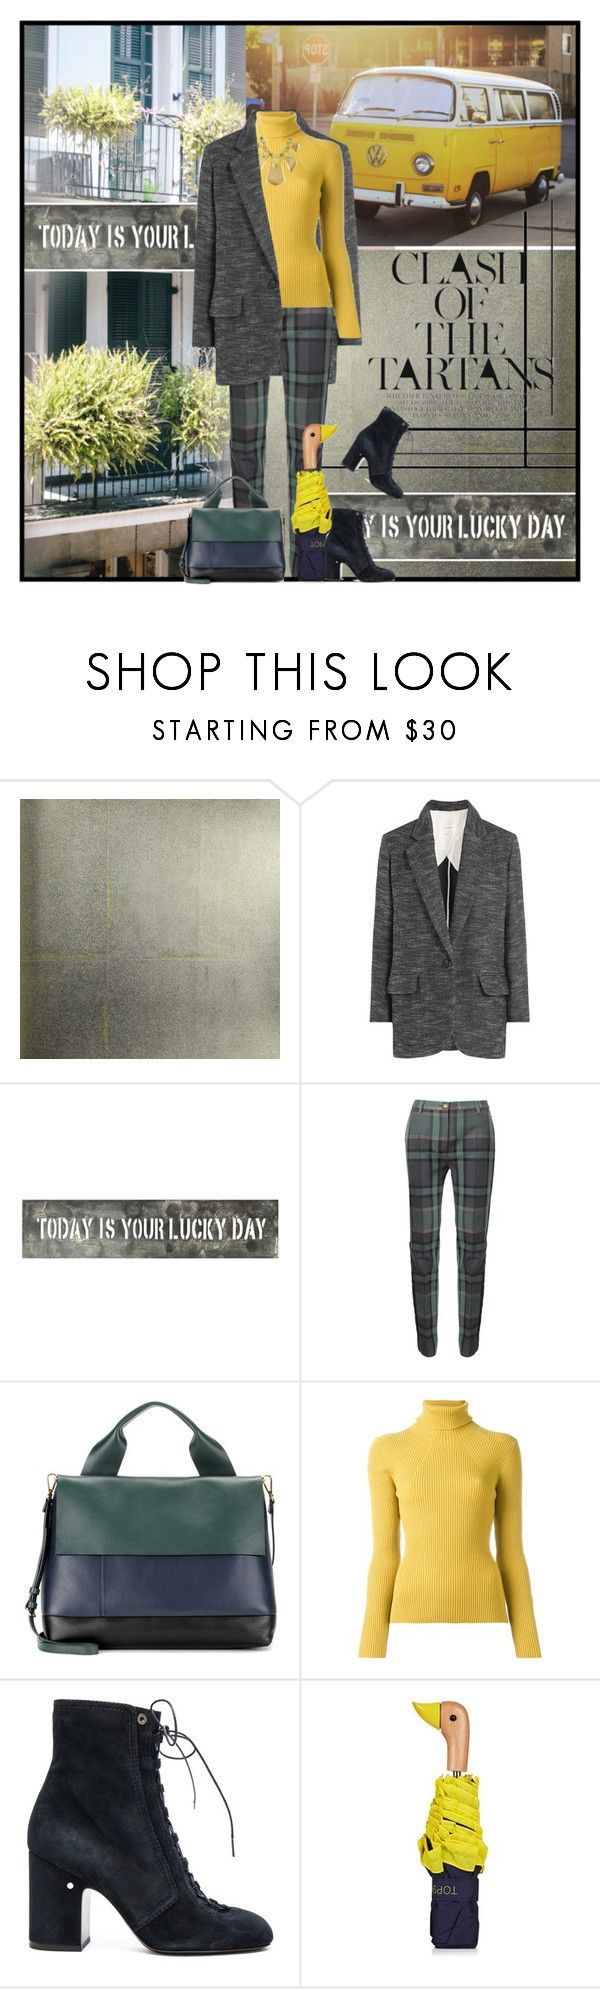 """""""Your lucky day"""" by noconfessions ❤ liked on Polyvore featuring Thomsen Paris, Burke Decor, Étoile Isabel Marant, Sugarboo Designs, Vivienne Westwood Red Label, Marni, 3.1 Phillip Lim, Laurence Dacade, Topshop and Alexis Bittar"""